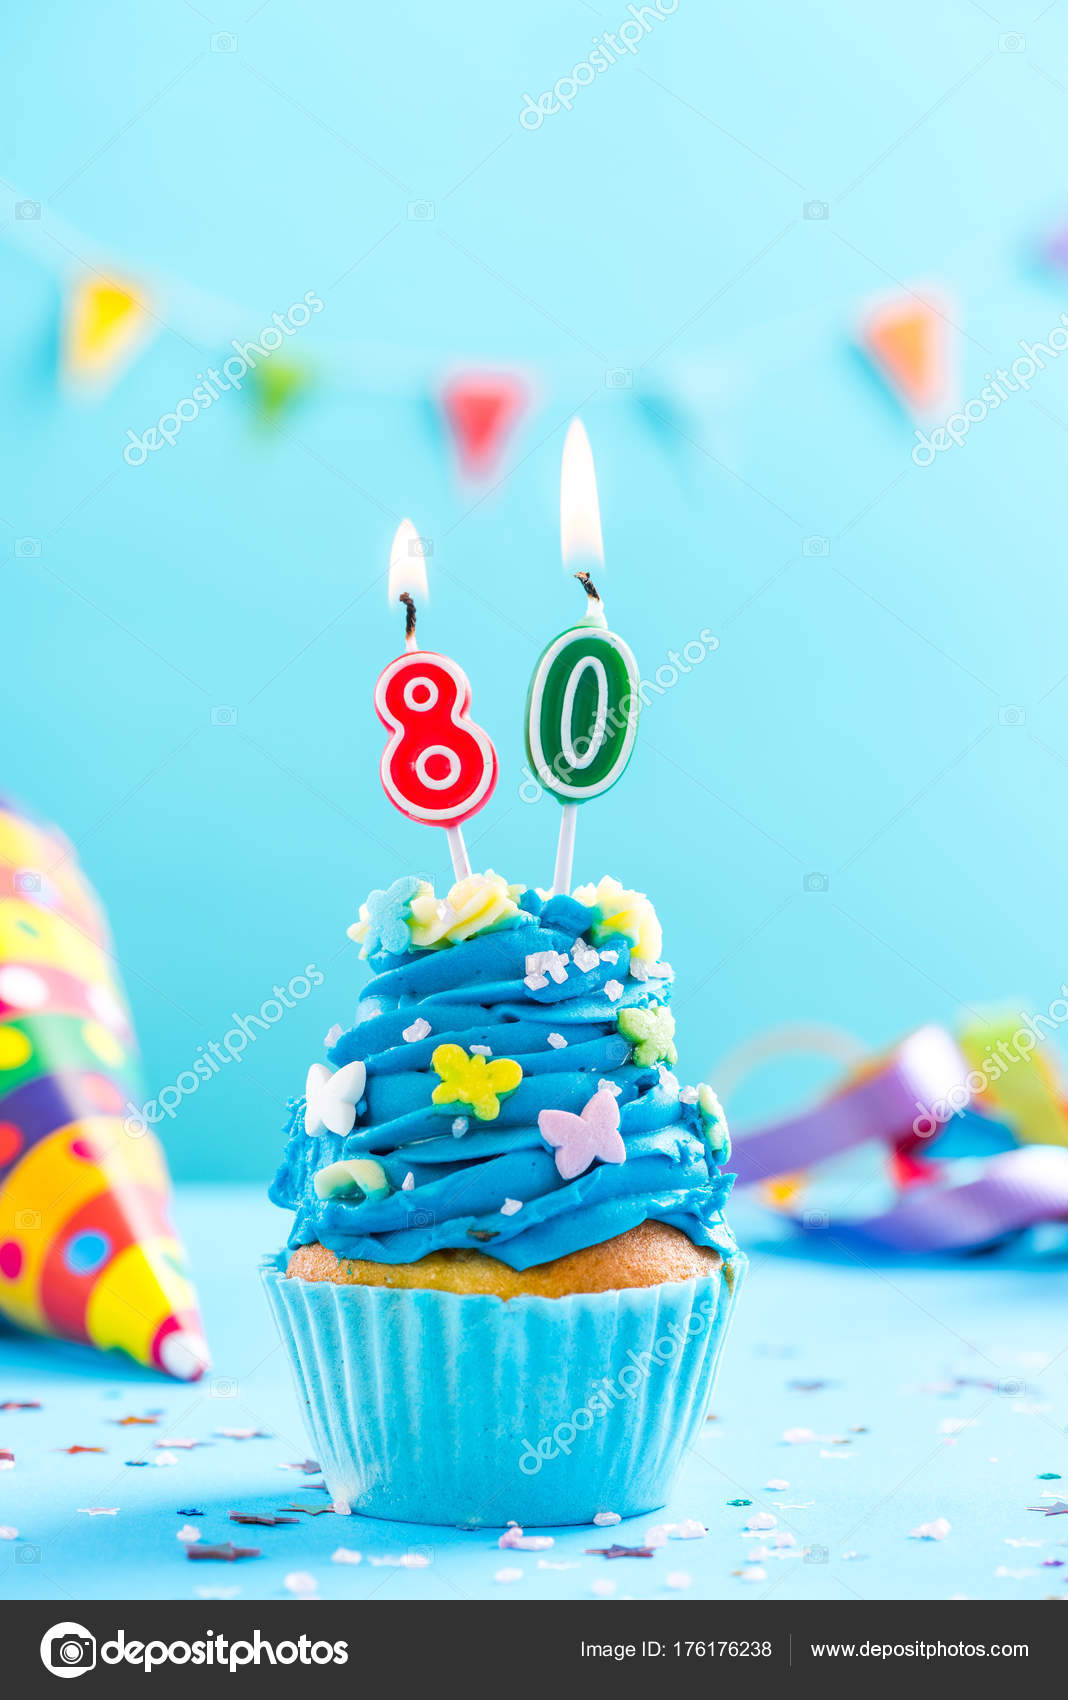 Eightieth 80th Birthday Cupcake With Candle Card Mockup Stock Photo